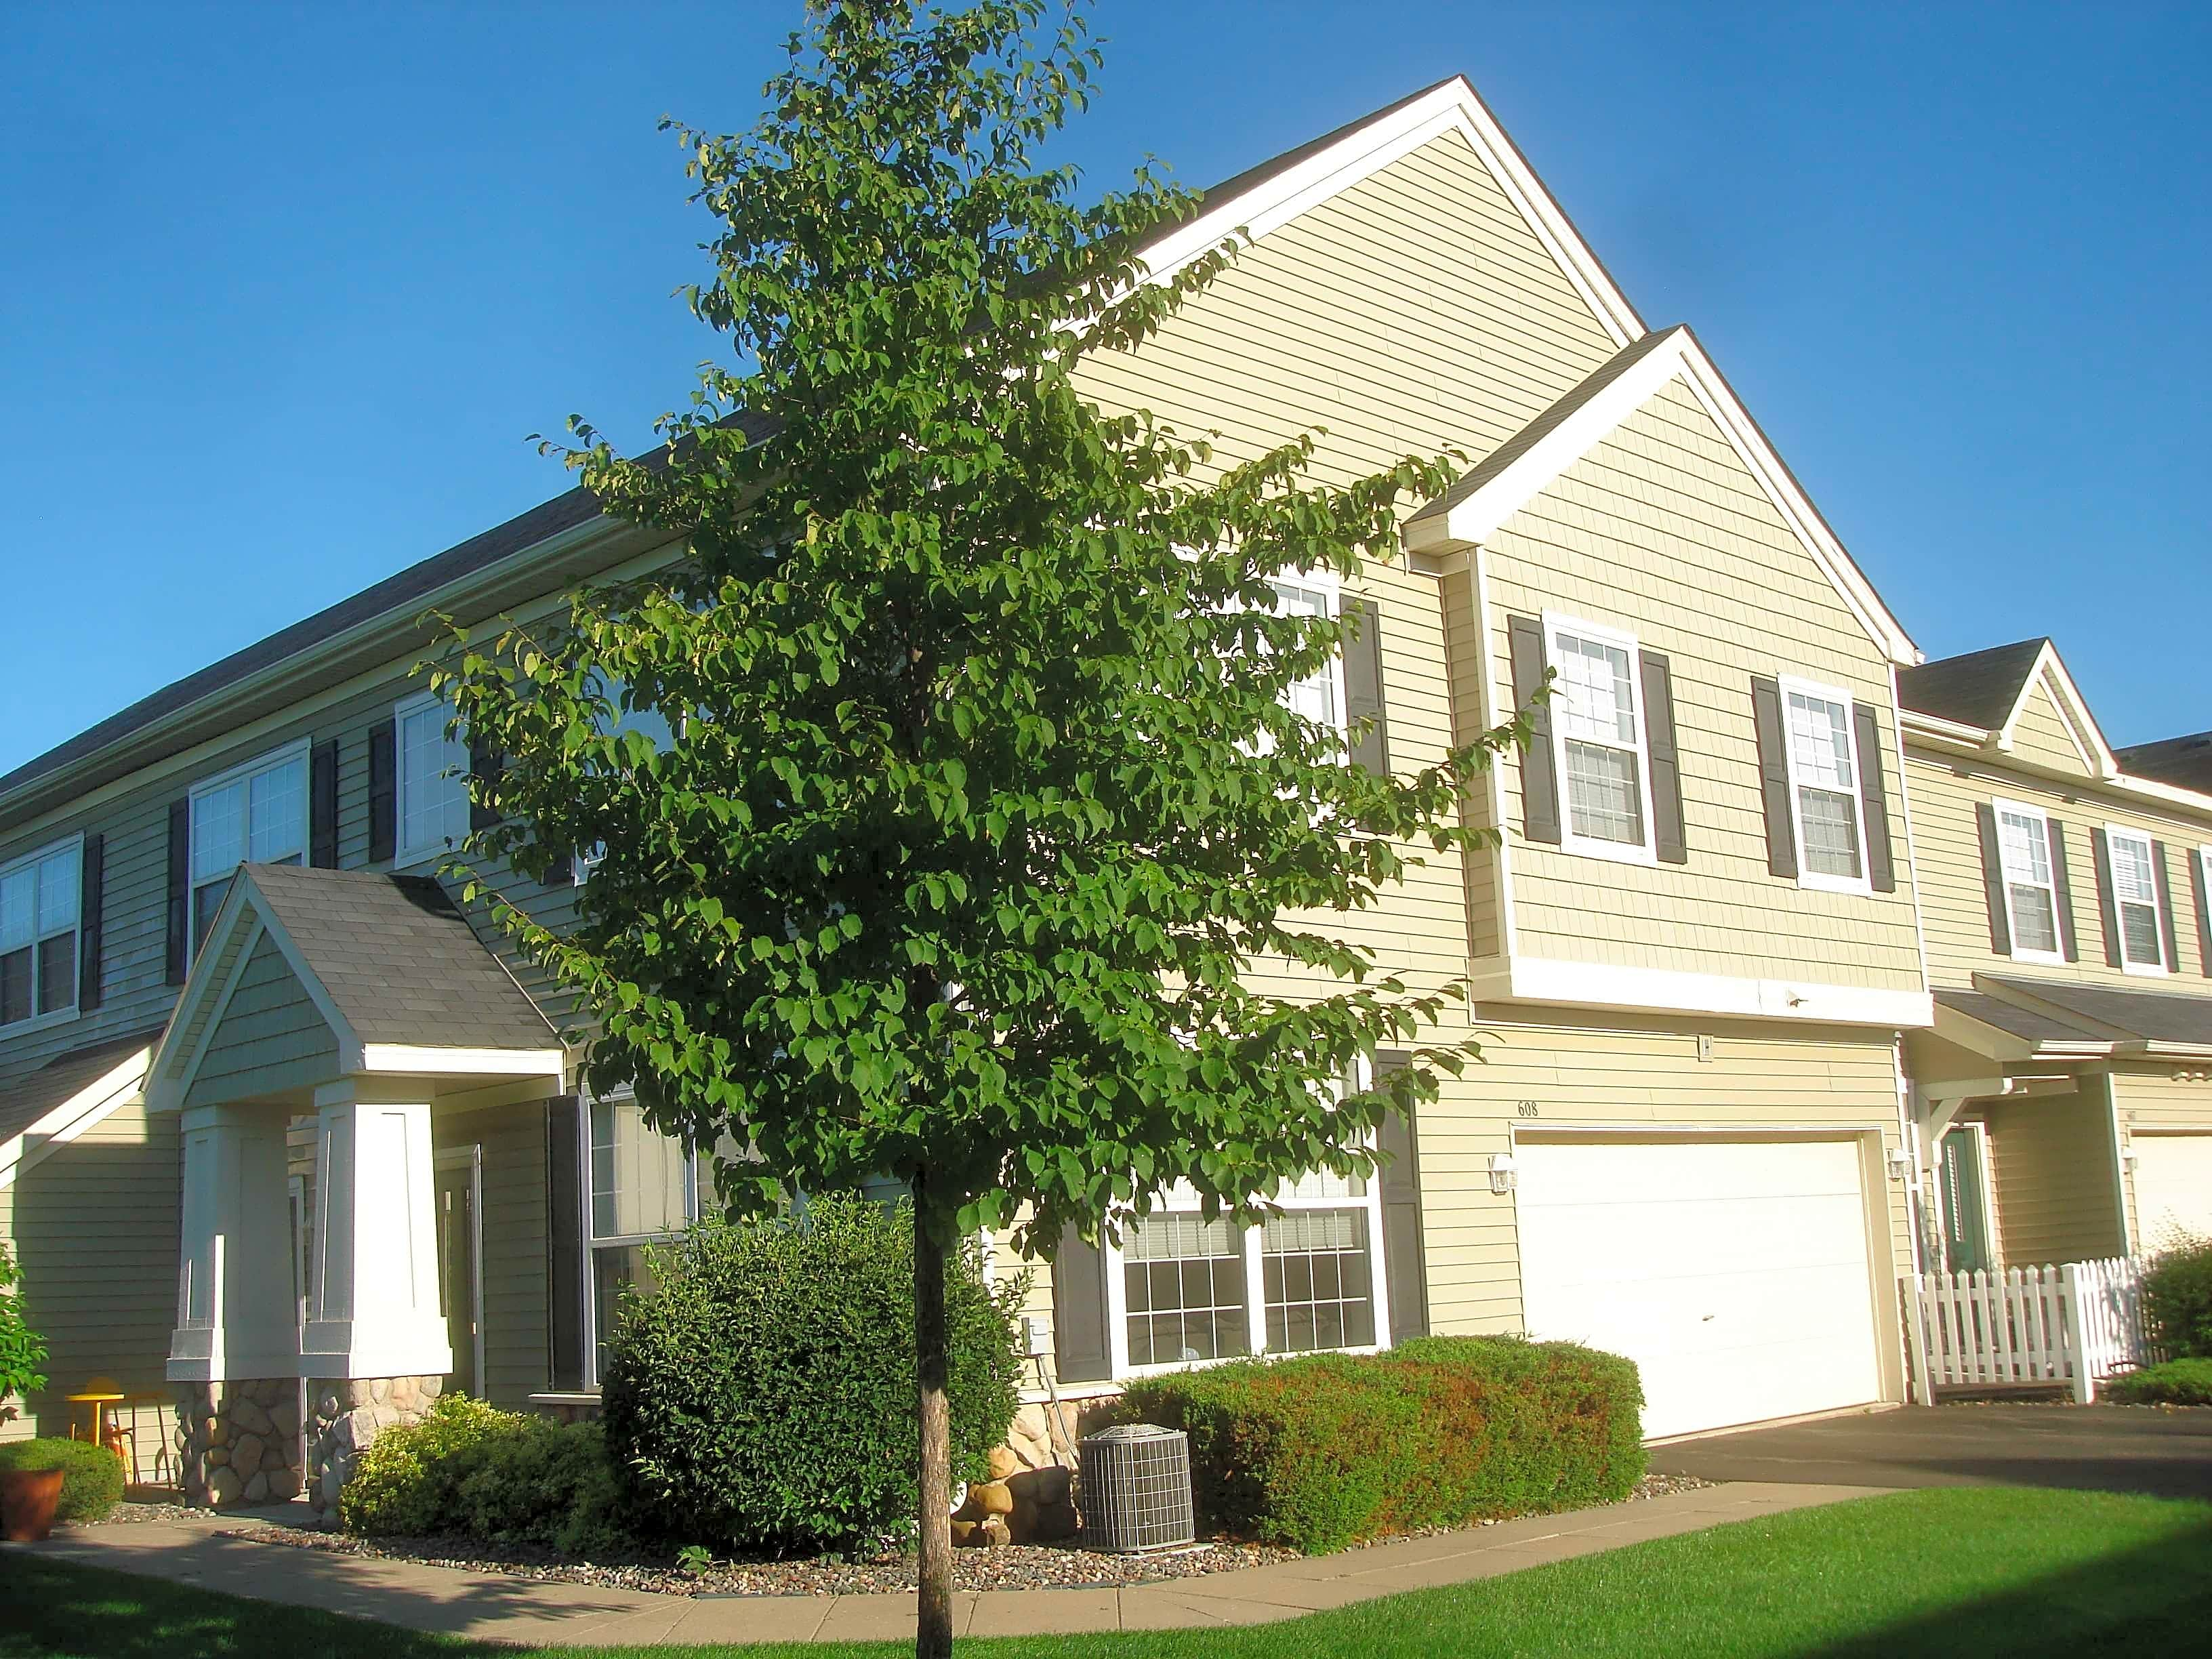 Condo for Rent in Plymouth